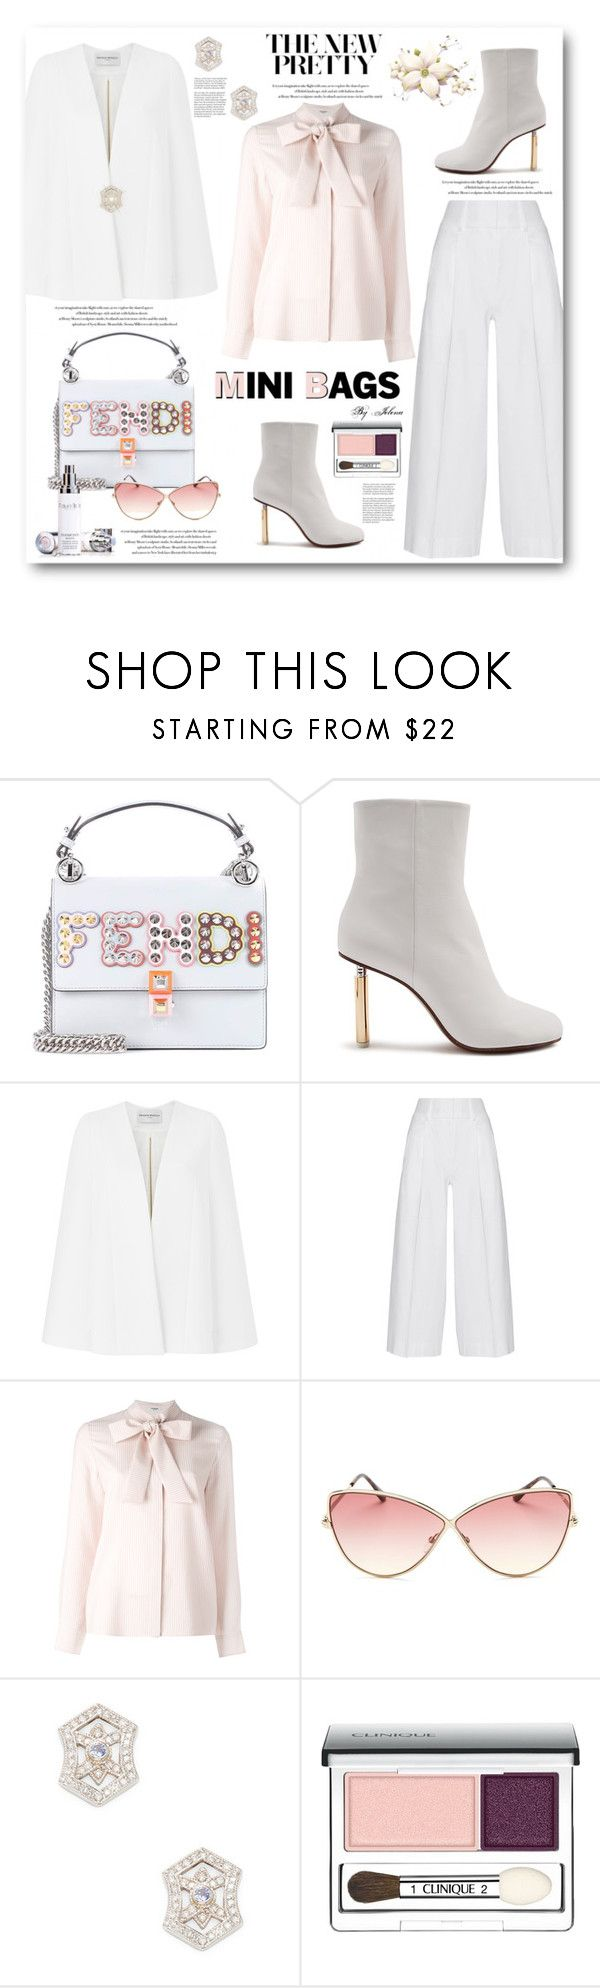 """So Cute: Mini Bags"" by jelenalazarevicpo ❤ liked on Polyvore featuring Fendi, Vetements, Amanda Wakeley, Diane Von Furstenberg, Vilshenko, Tom Ford, Effy Jewelry, Clinique and Natura Bissé"